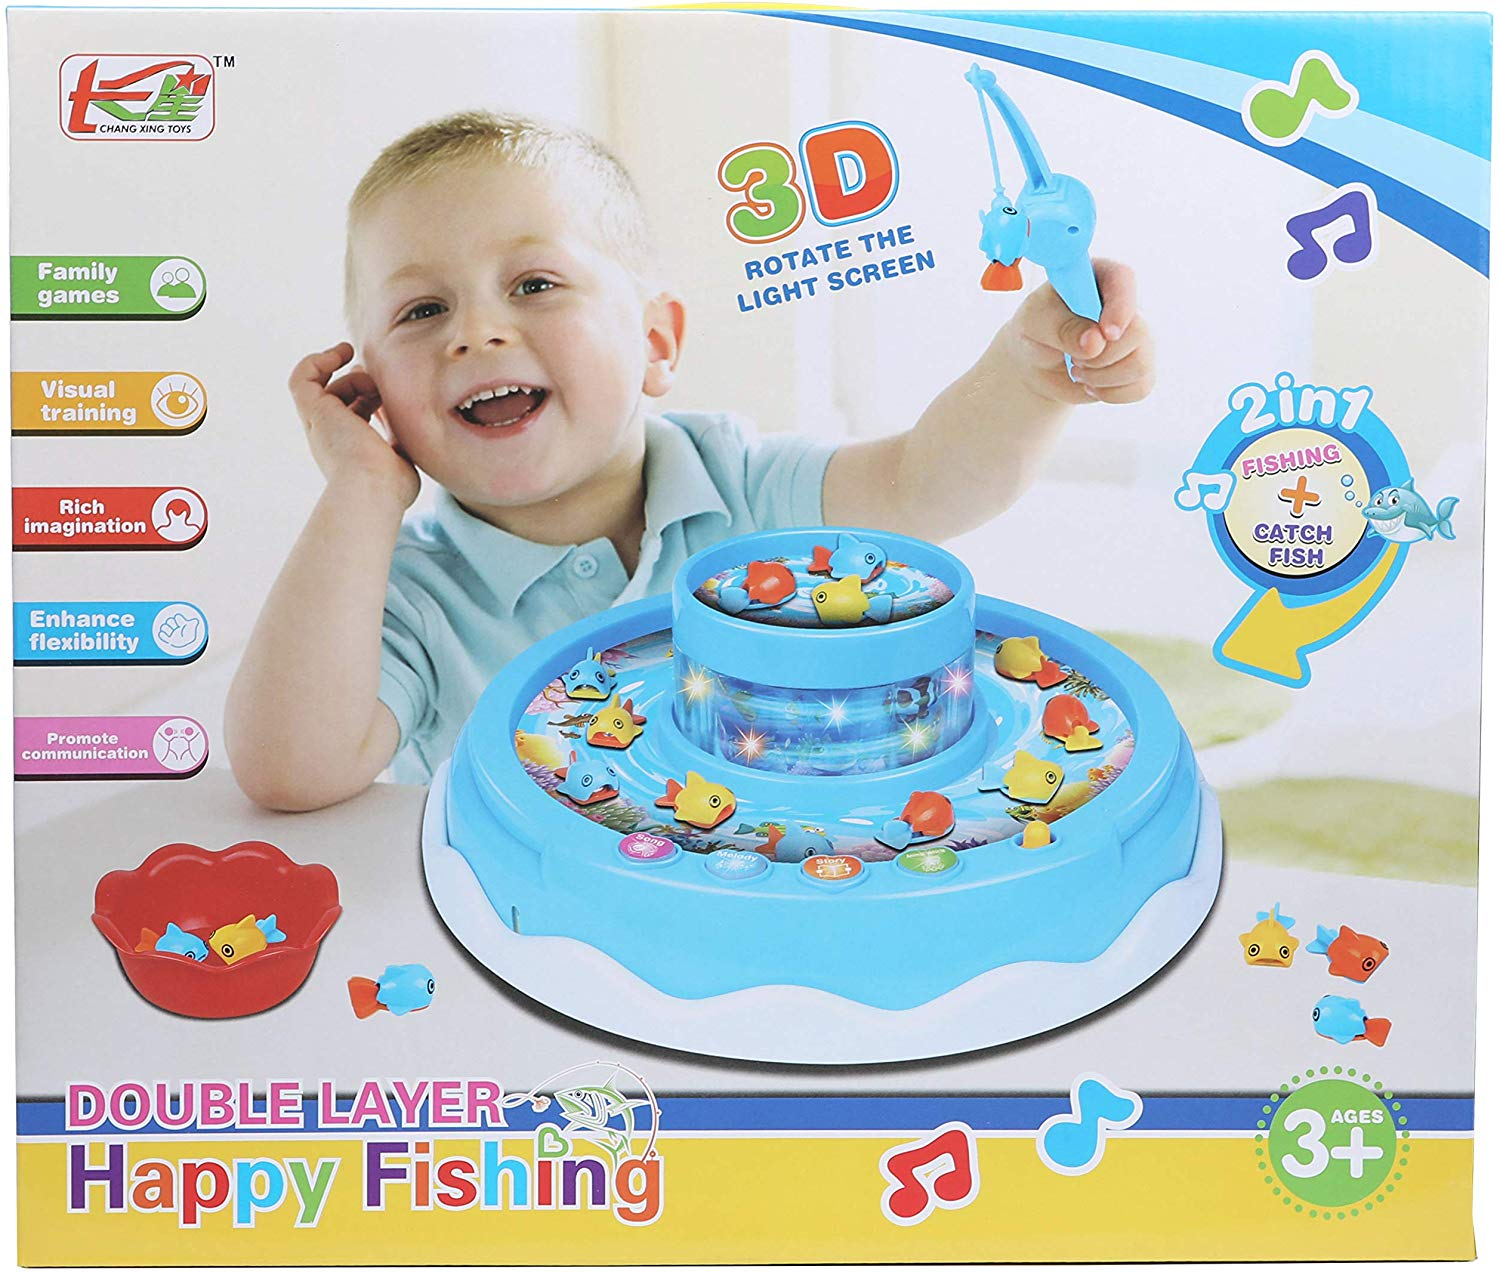 IQ Toys 22 Piece Lets Go Fishing Game with Rotating Fish, Lights, Music and Songs for Kids and Toddlers- 2 Fishing Rods and 18 Fish Included